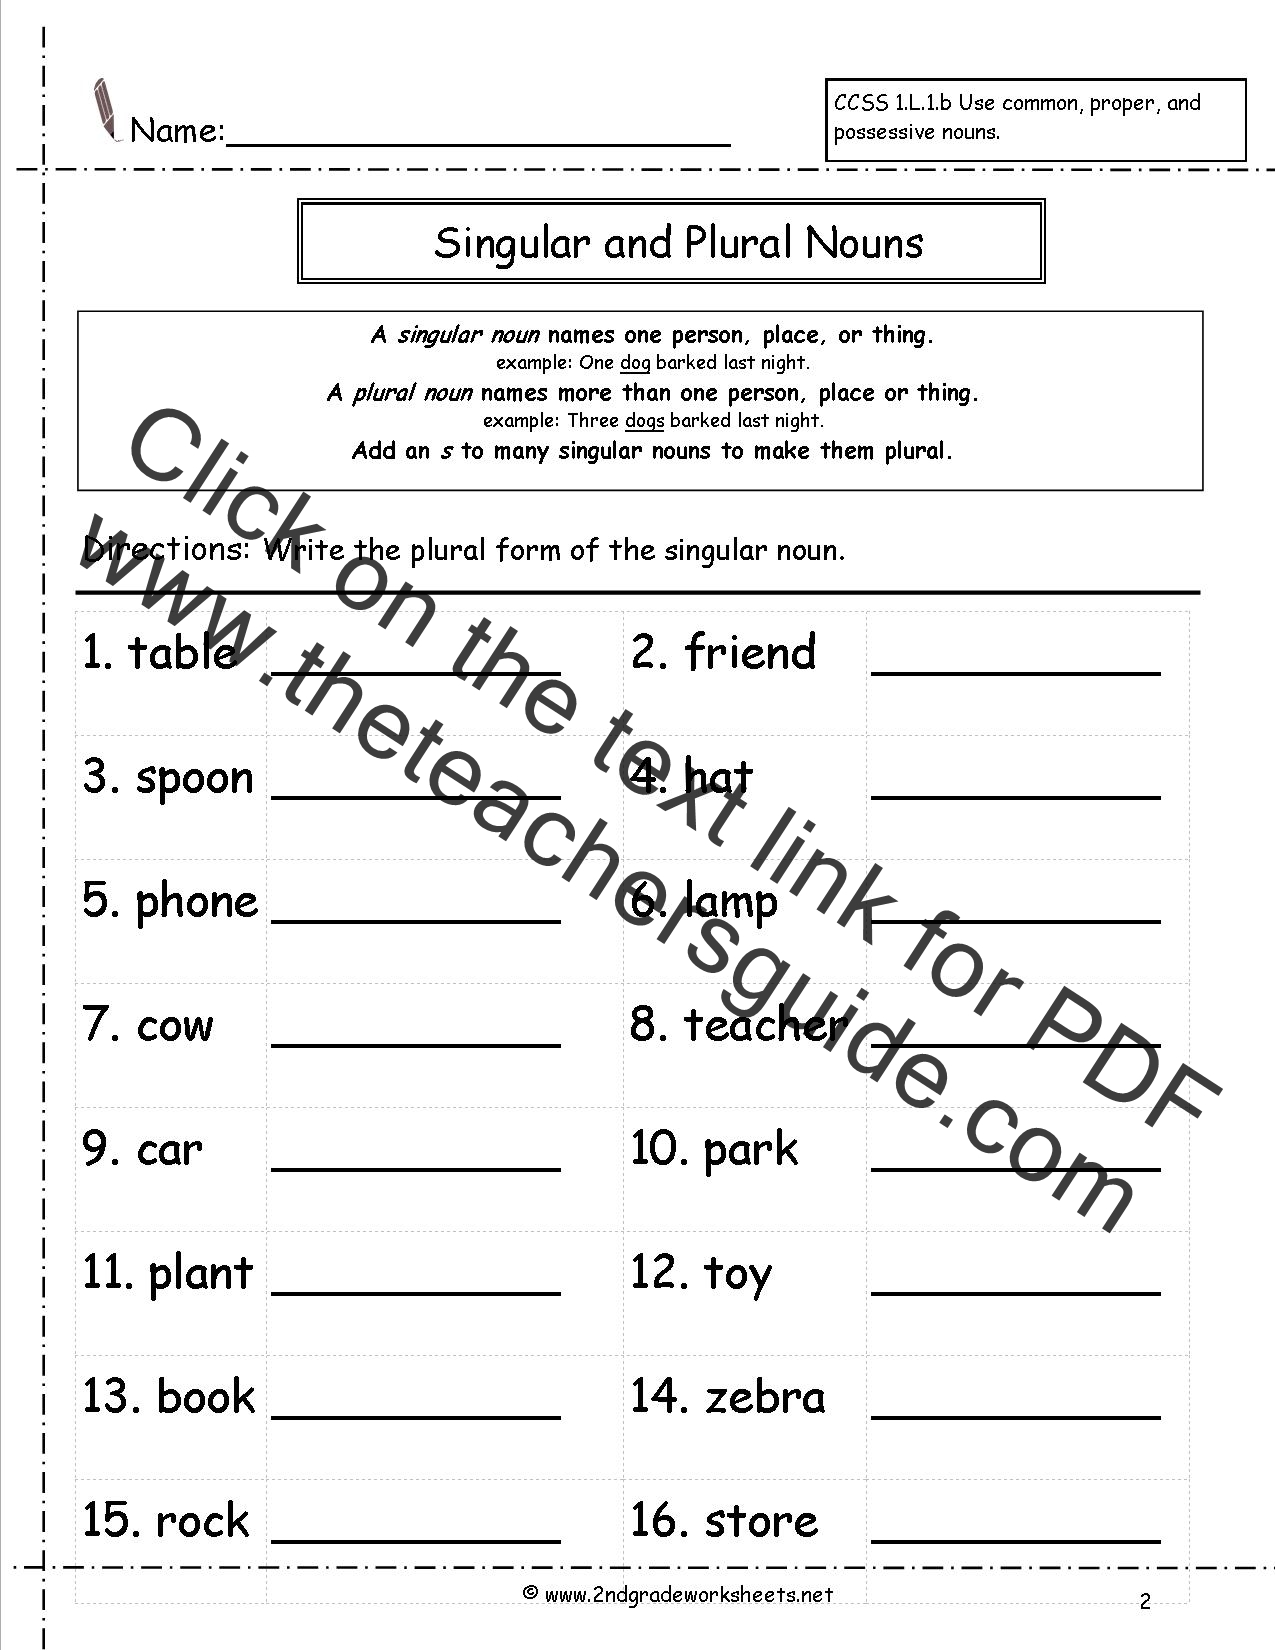 Worksheets Irregular Plural Nouns Worksheet singular and plural nouns worksheets worksheet